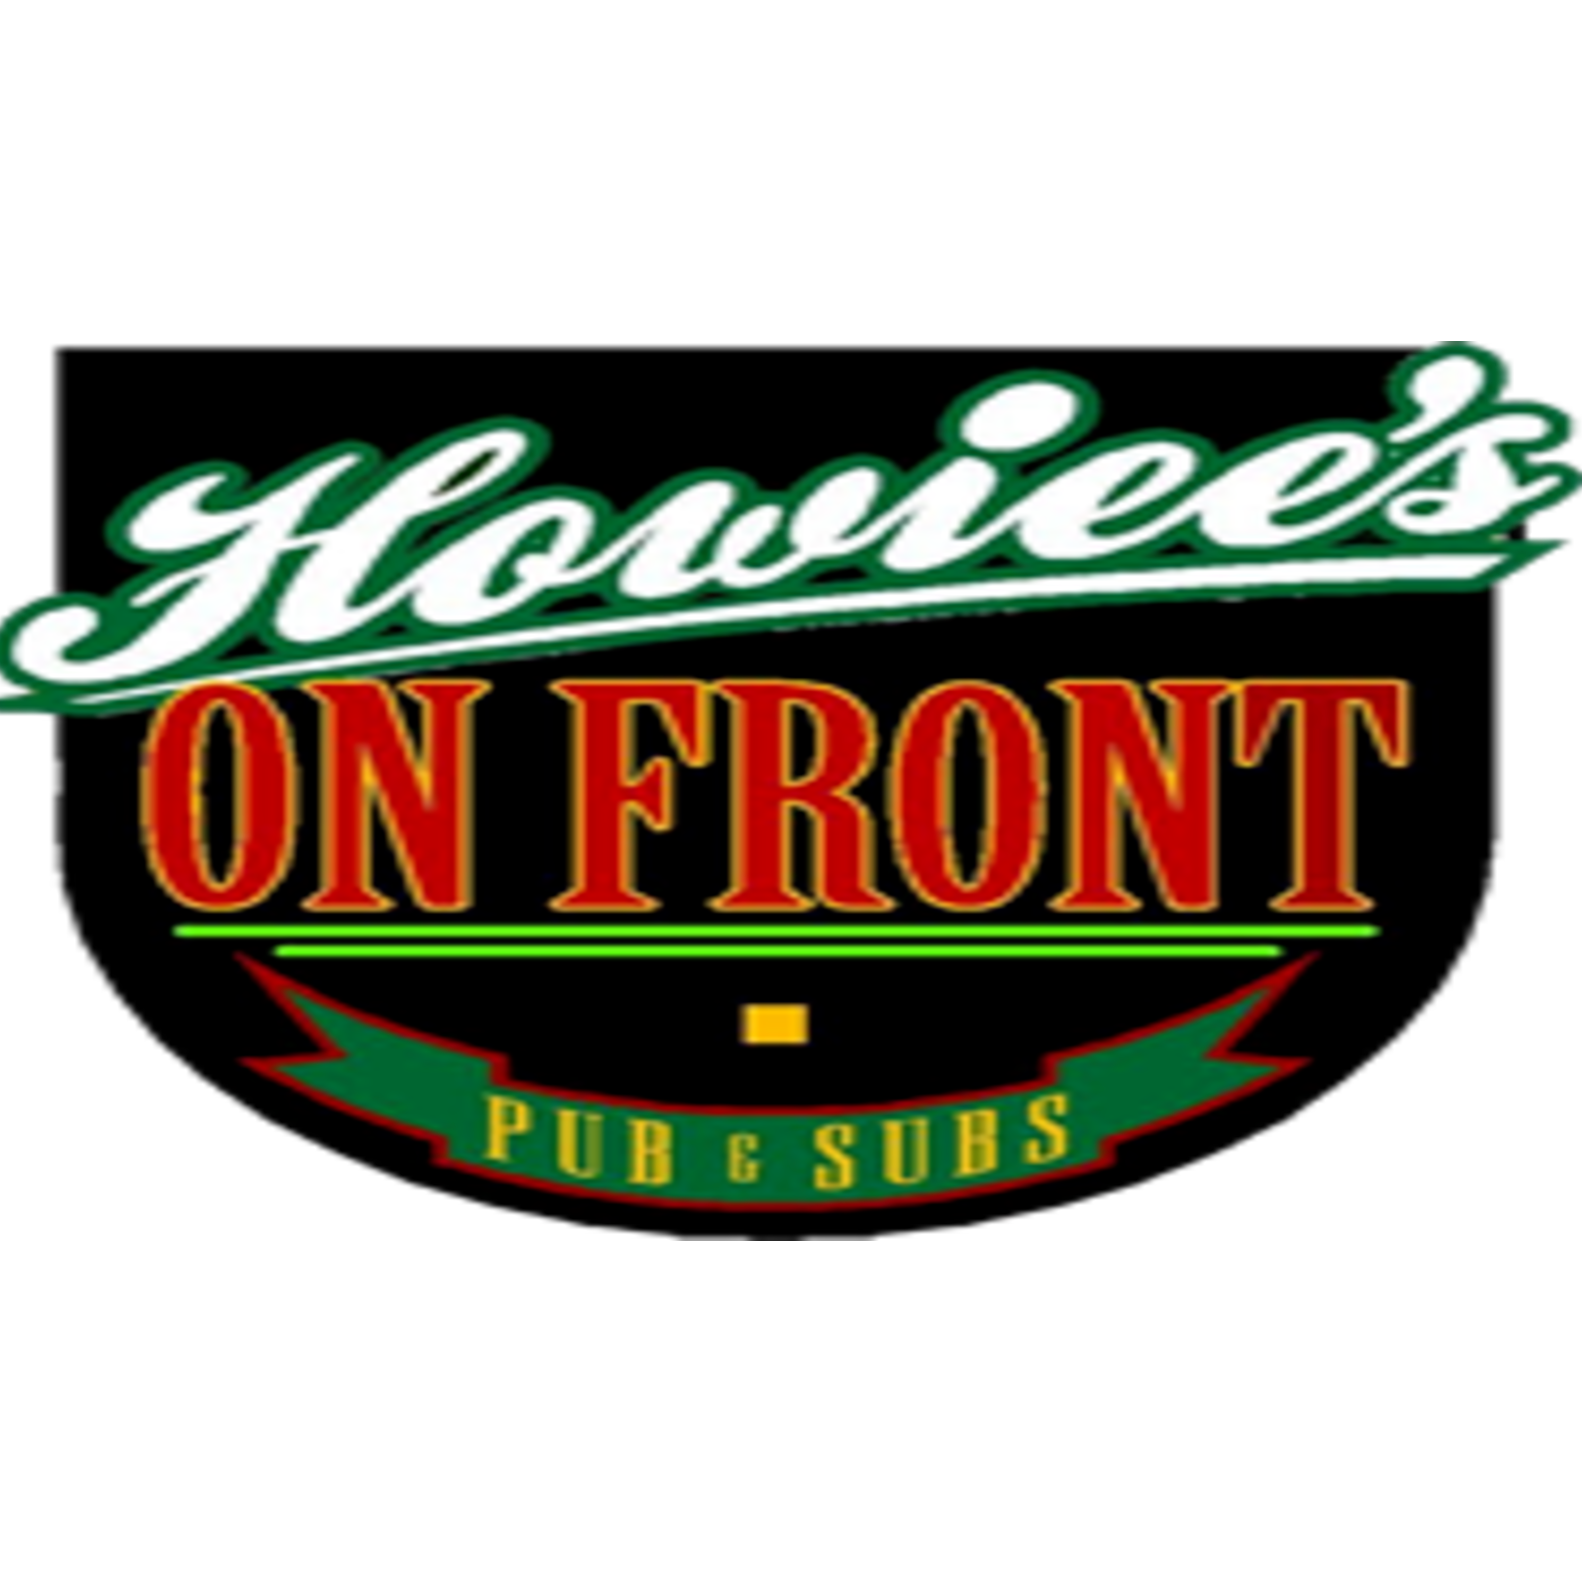 Howiee's on front